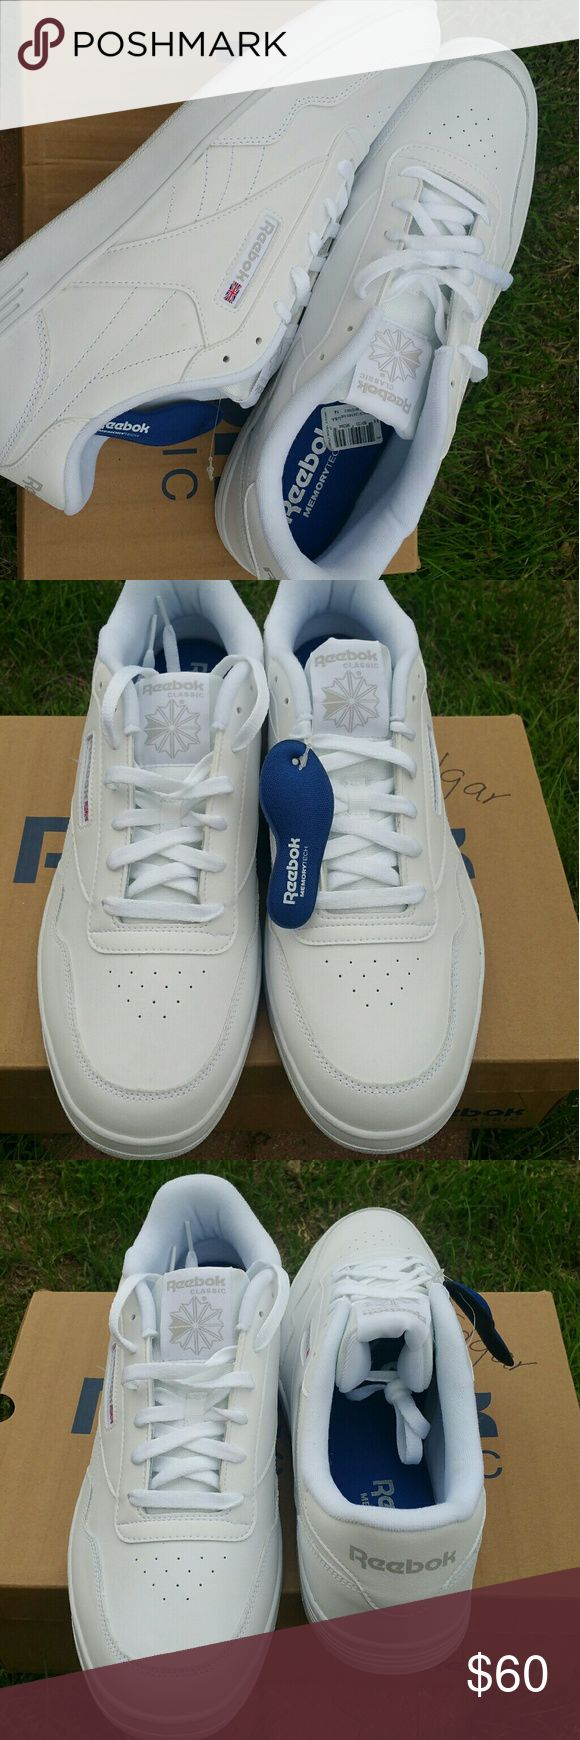 Men's White Reebok Brand new. Never worn  Perfect Condition Men's Size 14 Reebok Sneakers. Featuring Comfort Memory Tech Premium Comfort Footbed. For That Walking On Clouds Feel.   *Tiny Smudge On Edge Of Shoe *Box Has Name Written On It. Reebok Shoes Sneakers